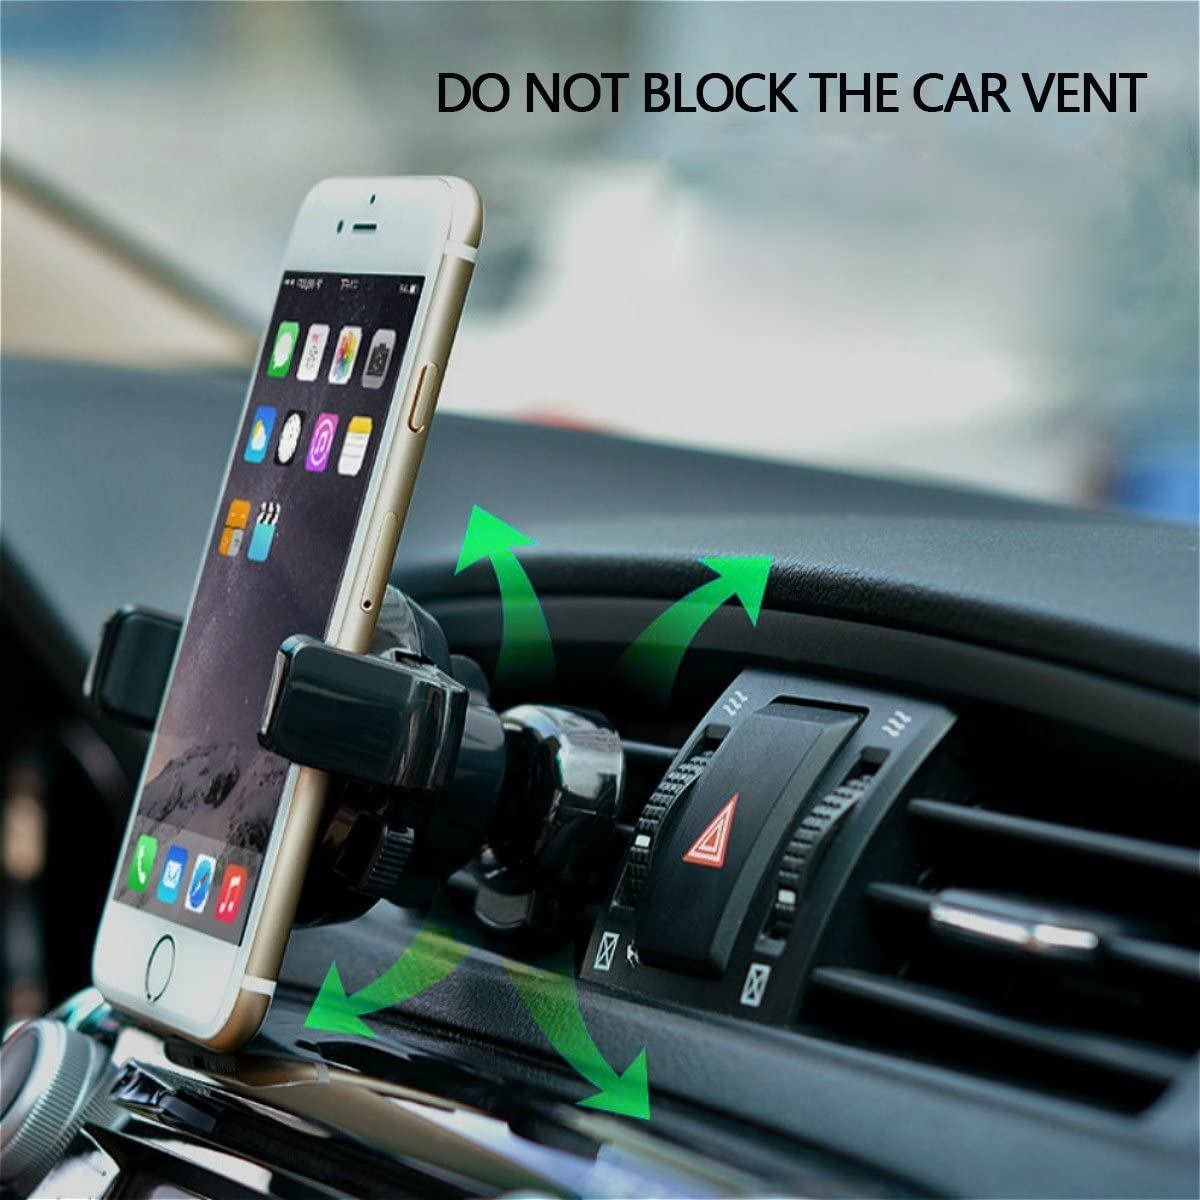 Google Nexus LG Car Stand and More TIDLAY Car Mount Holder Universal Phone Holder 360 Degree Rotation for iPhone X//8//8Plus//7//7Plus//6s//6Plus//5S Black Galaxy S5//S6//S7//S8